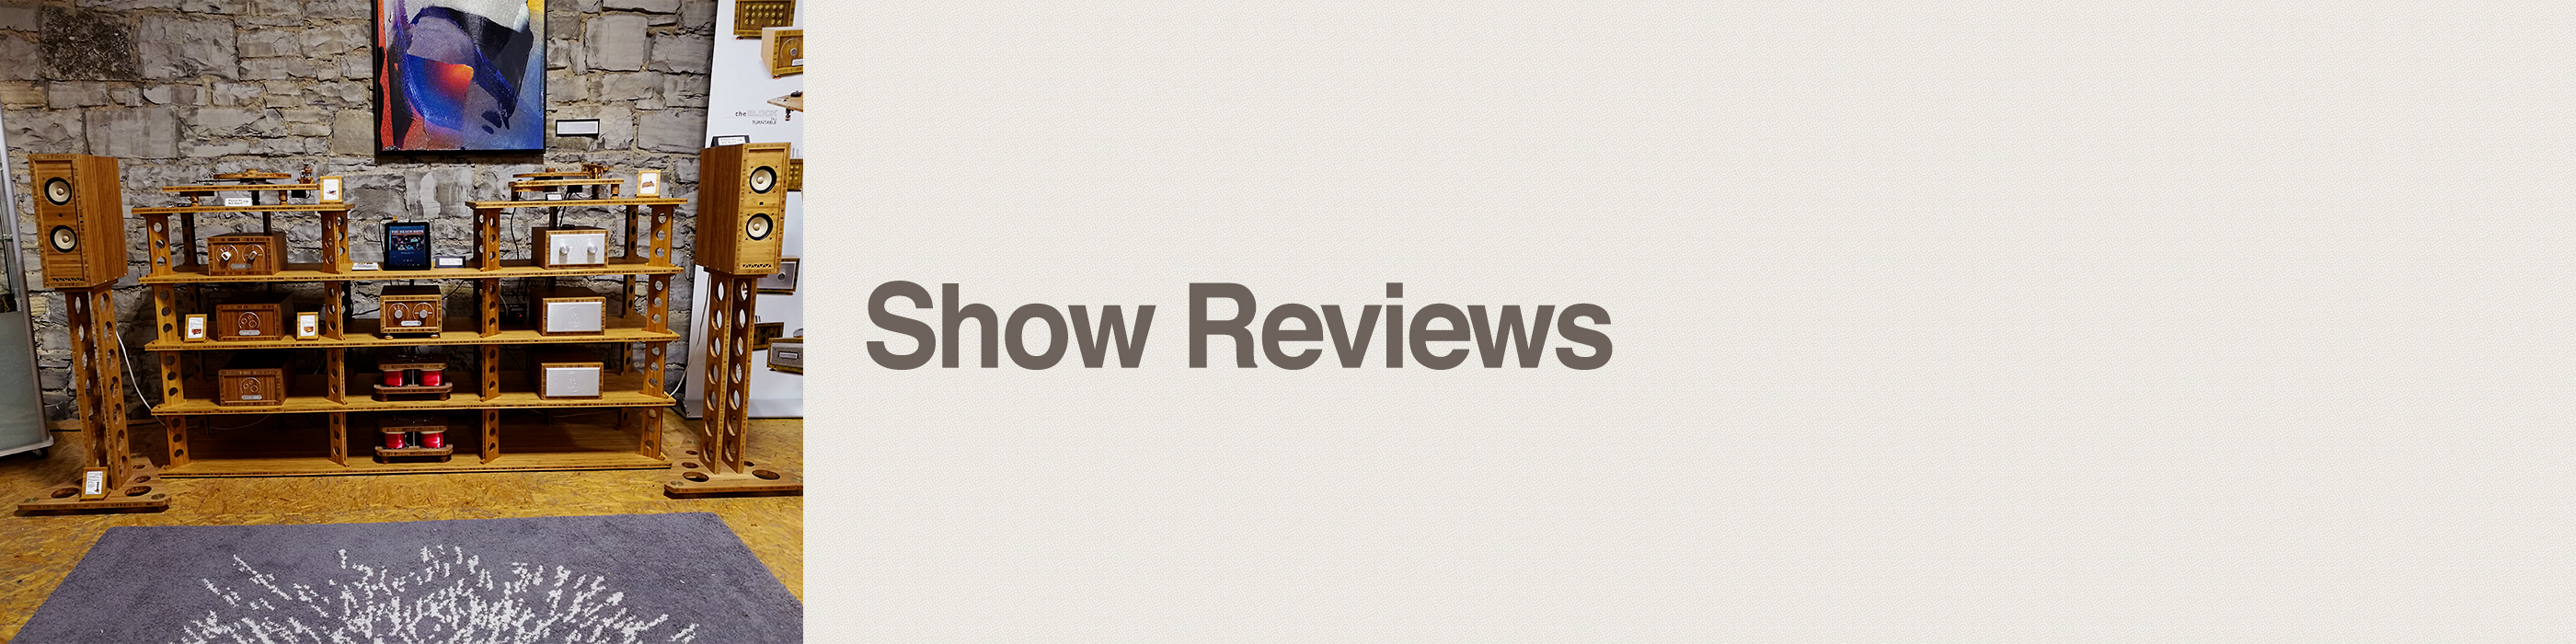 show reviews header